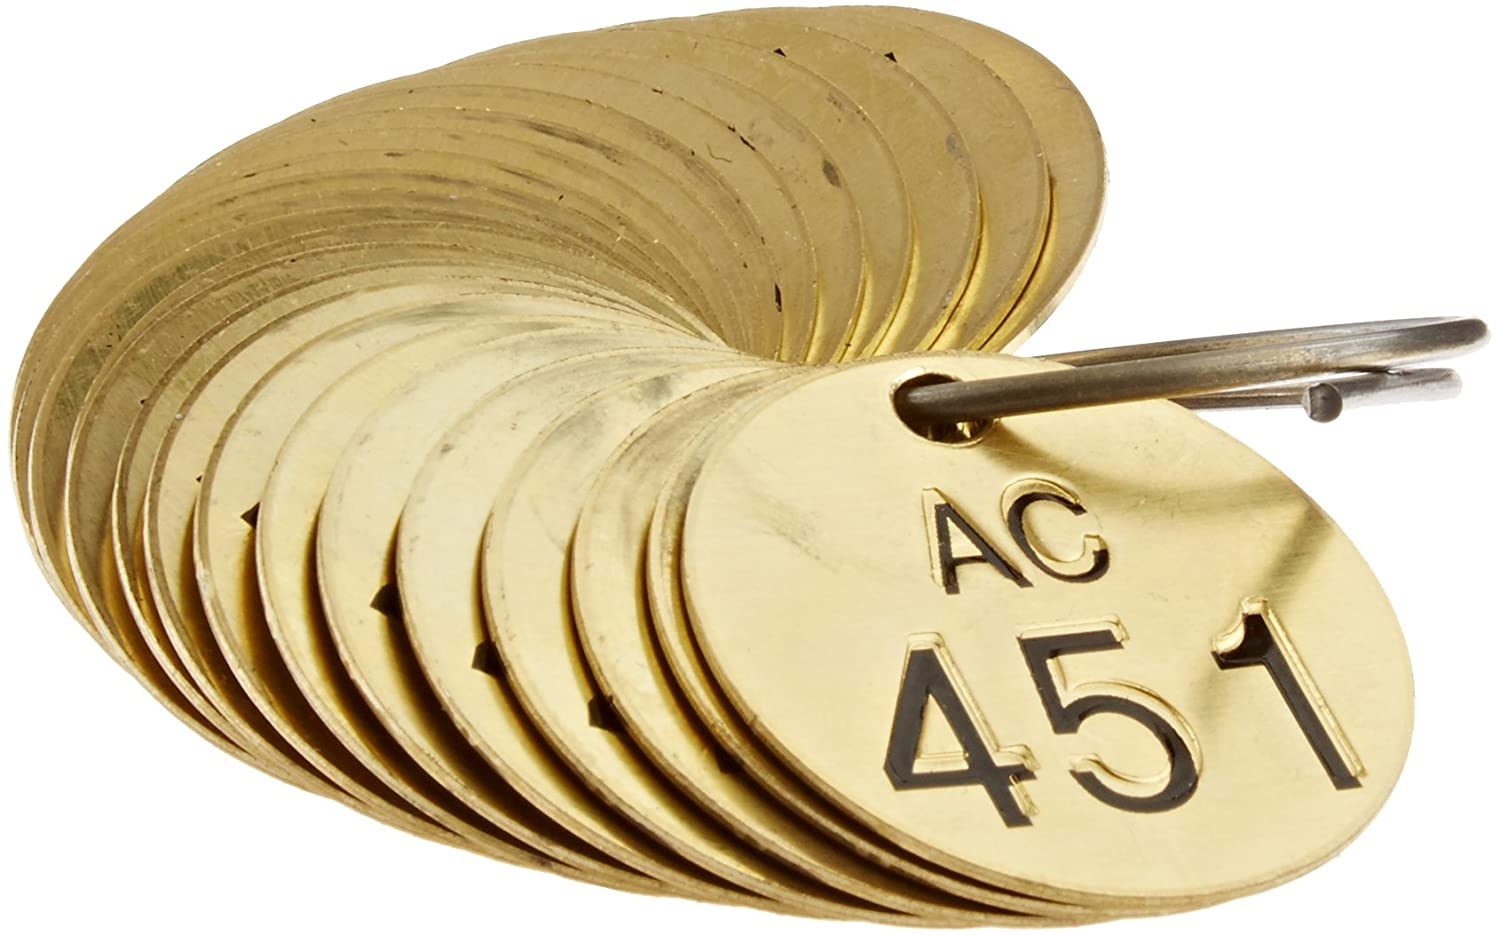 Legend AC Brady  23494 1 1//2 Diameter Stamped Brass Valve Tags Numbers 451-475 Pack of 25 Tags